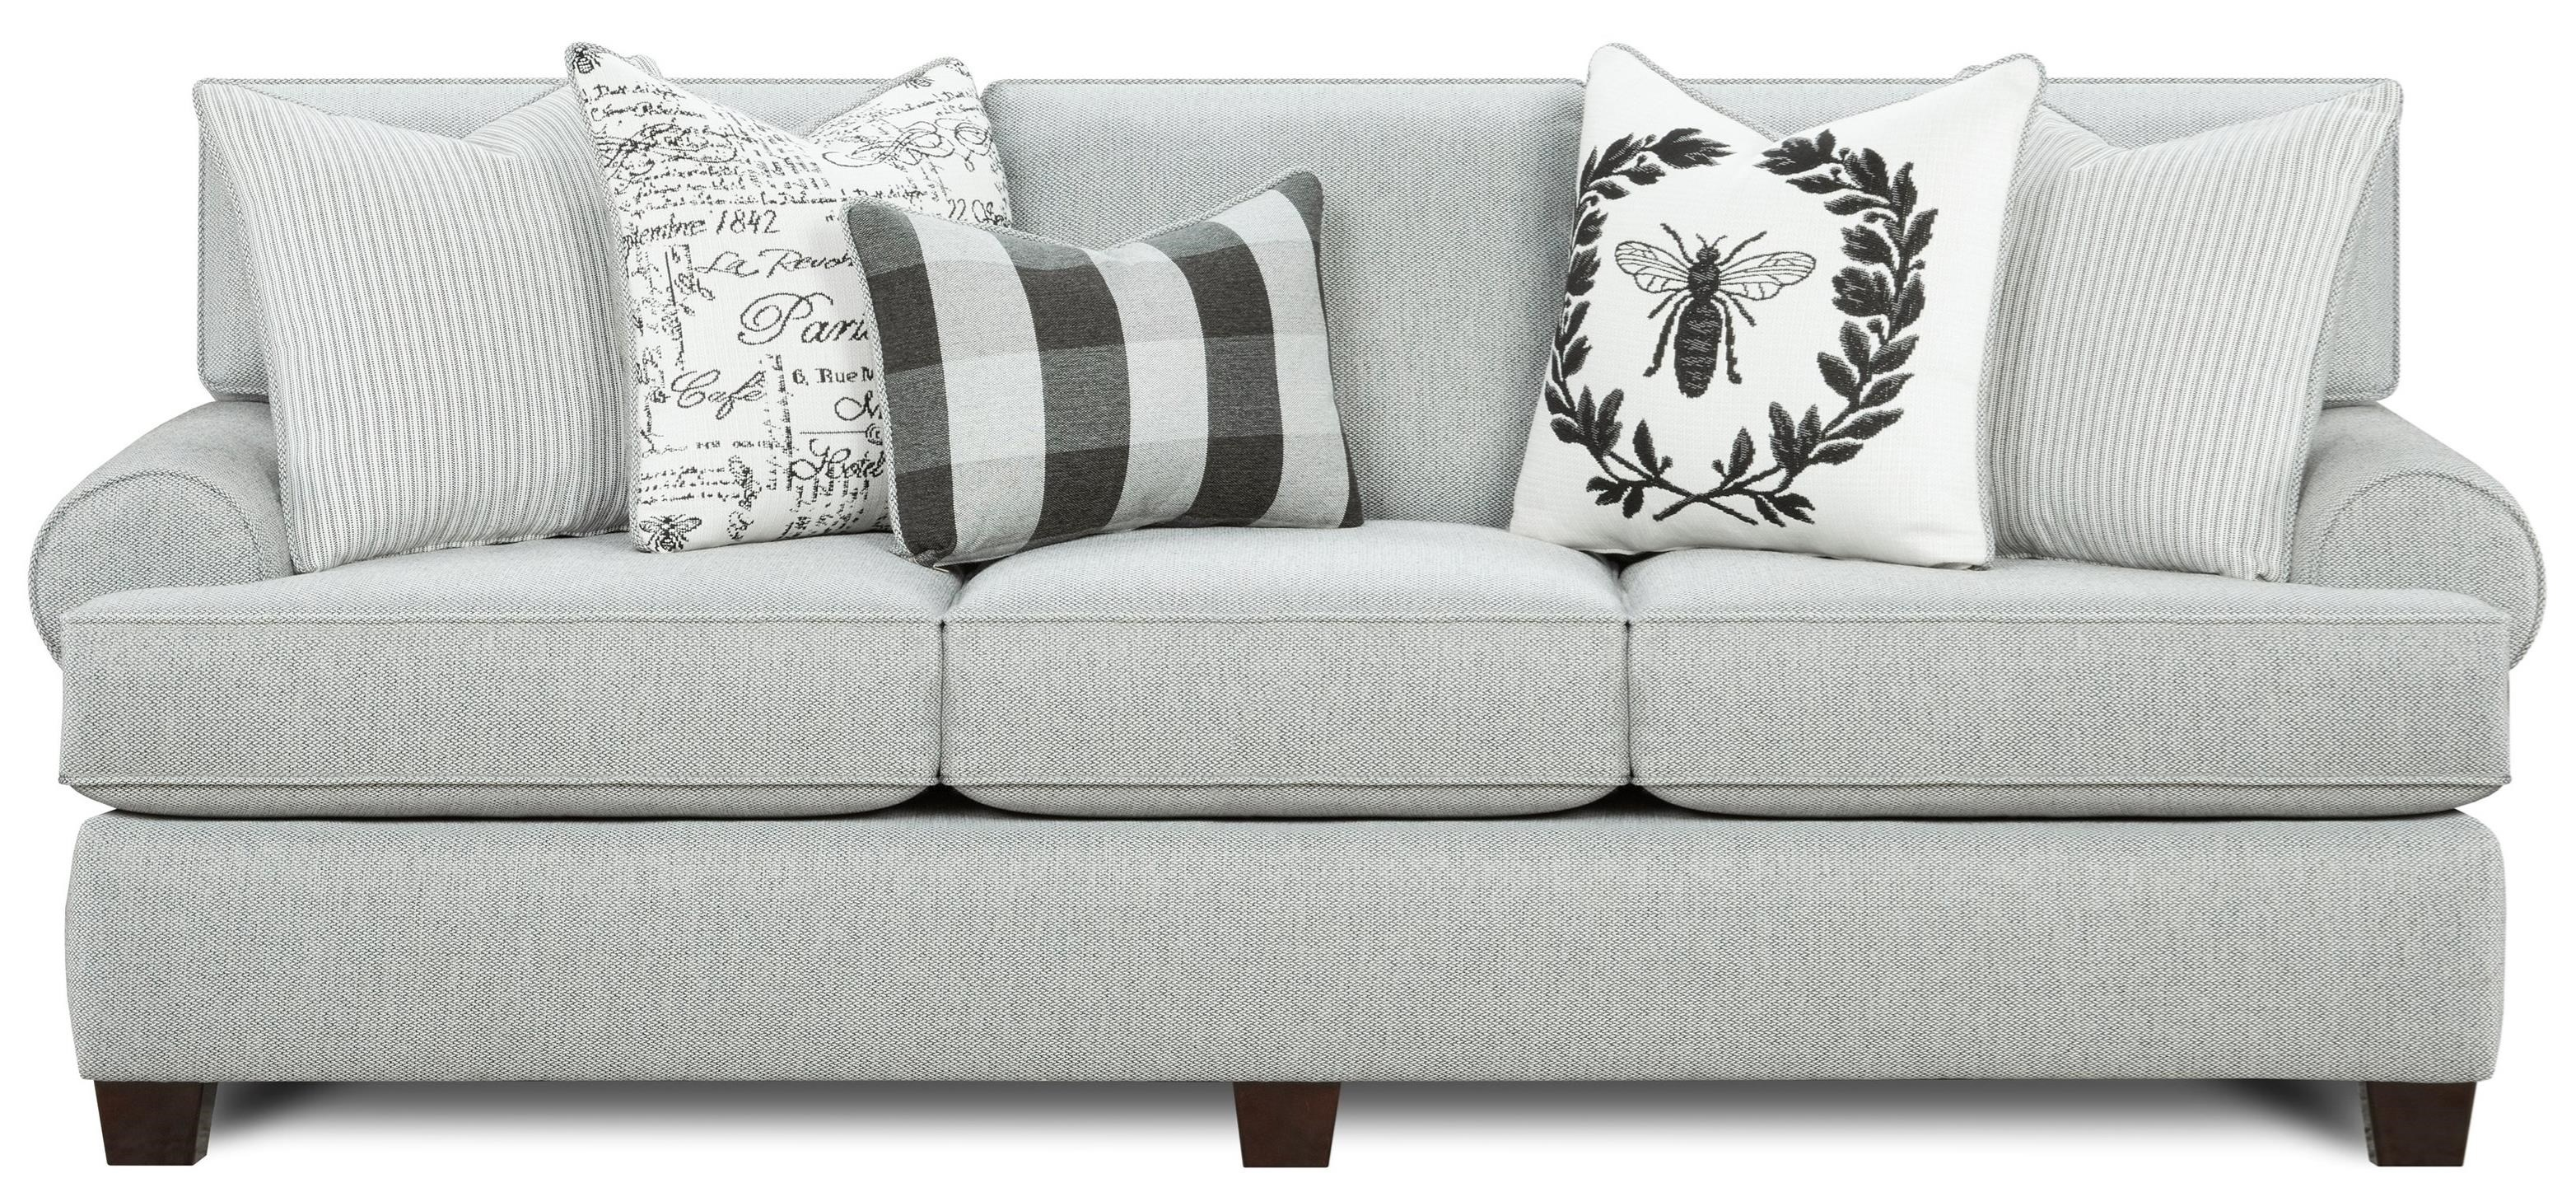 39-00 Sofa by Fusion Furniture at Dean Bosler's